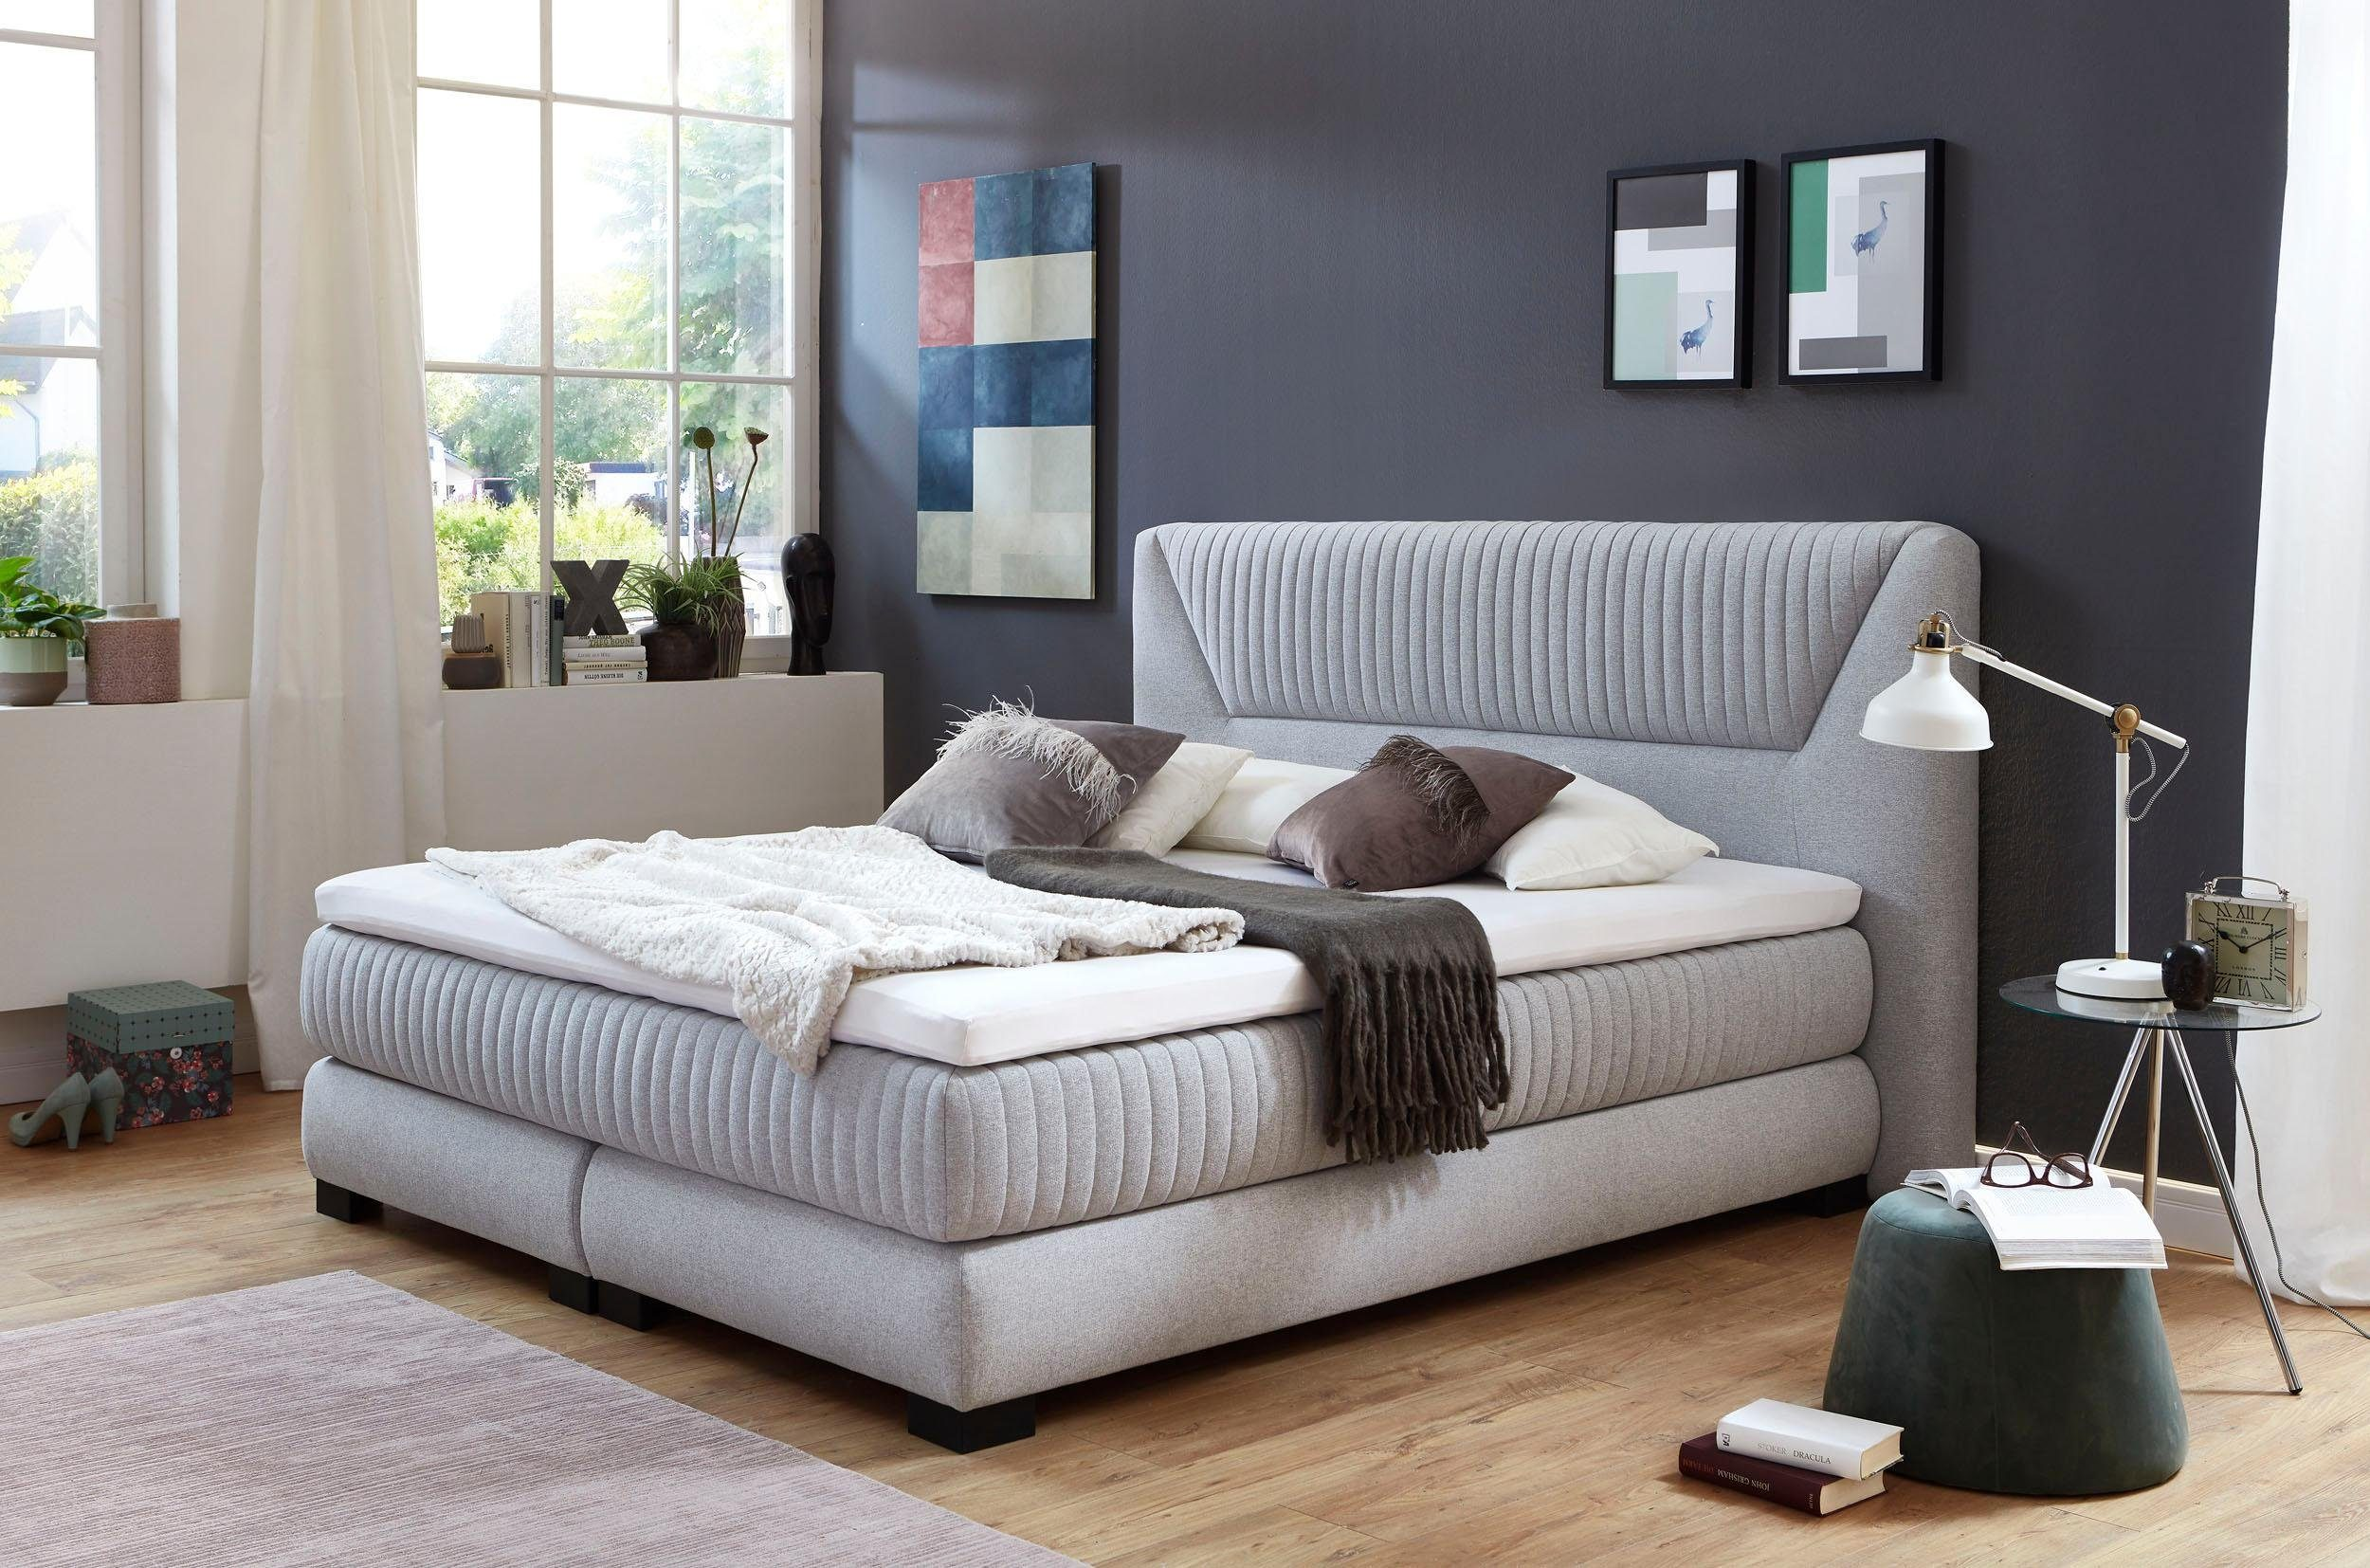 Atlantic Home Collection Boxspringbett Mit Kaltschaum